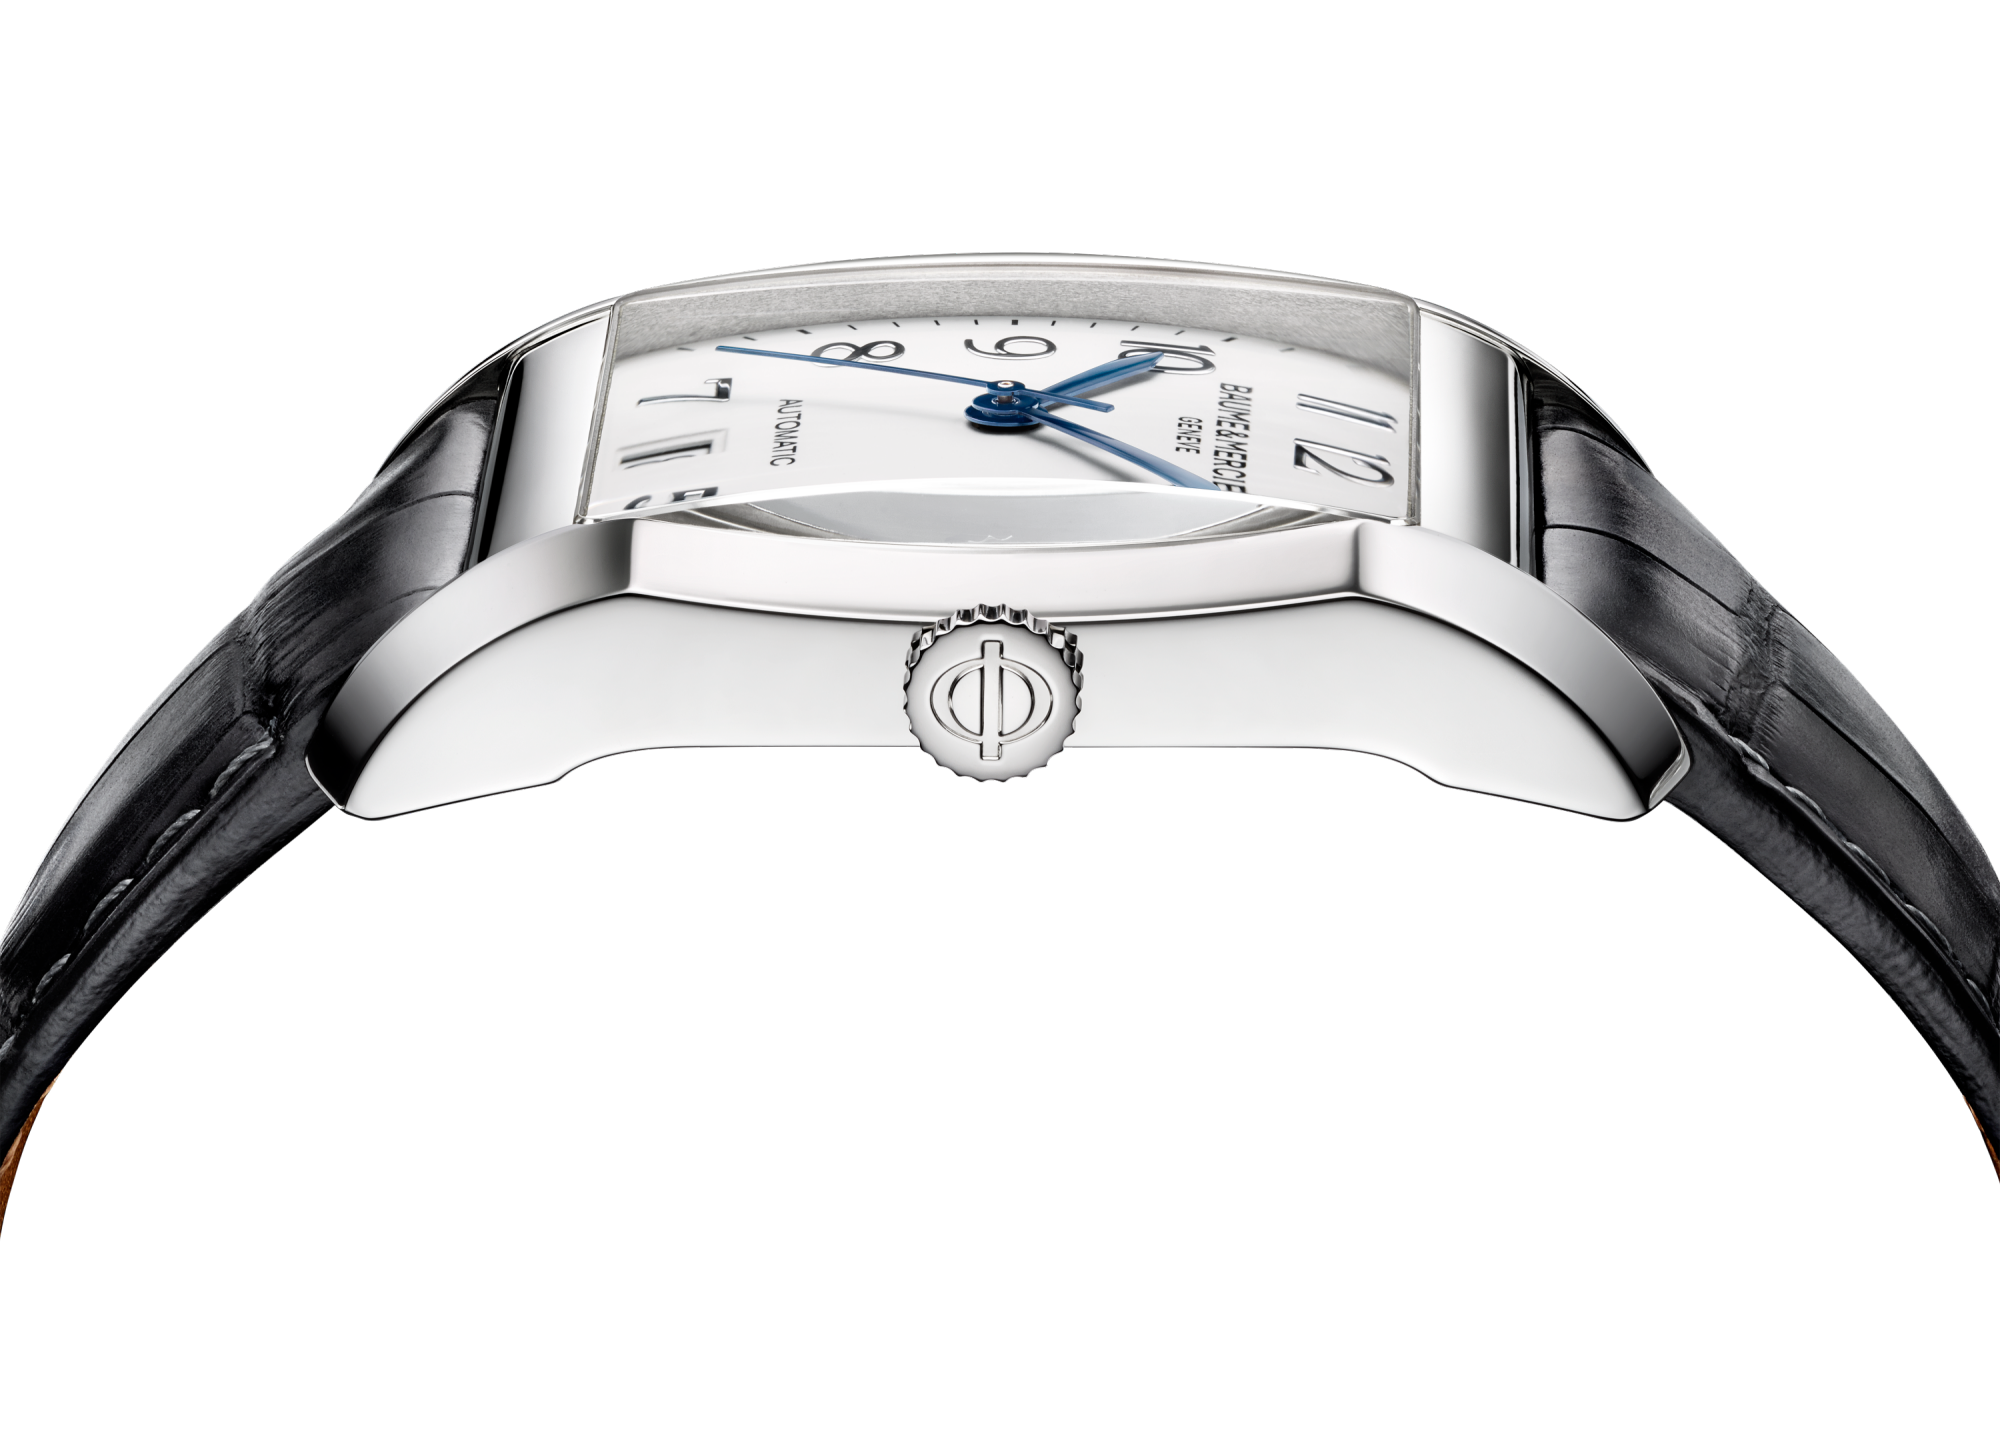 Hampton 10155 Watch for men | Check Prices on Baume & Mercier Close-Up -